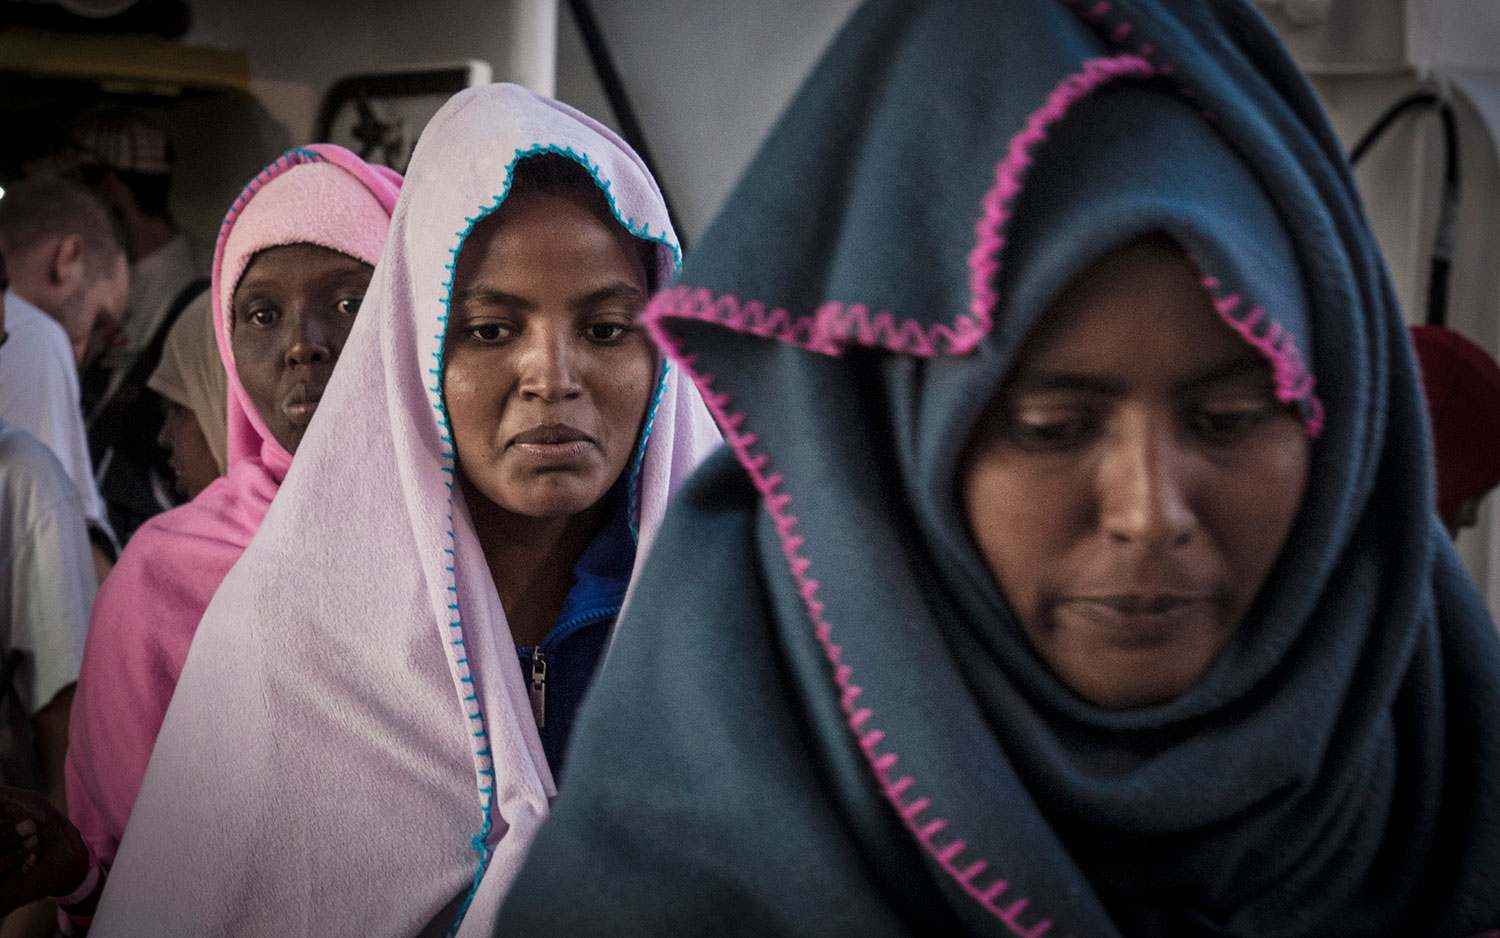 Women on board the Aquarius following their rescue in international waters off Libya. October 12, 2017.